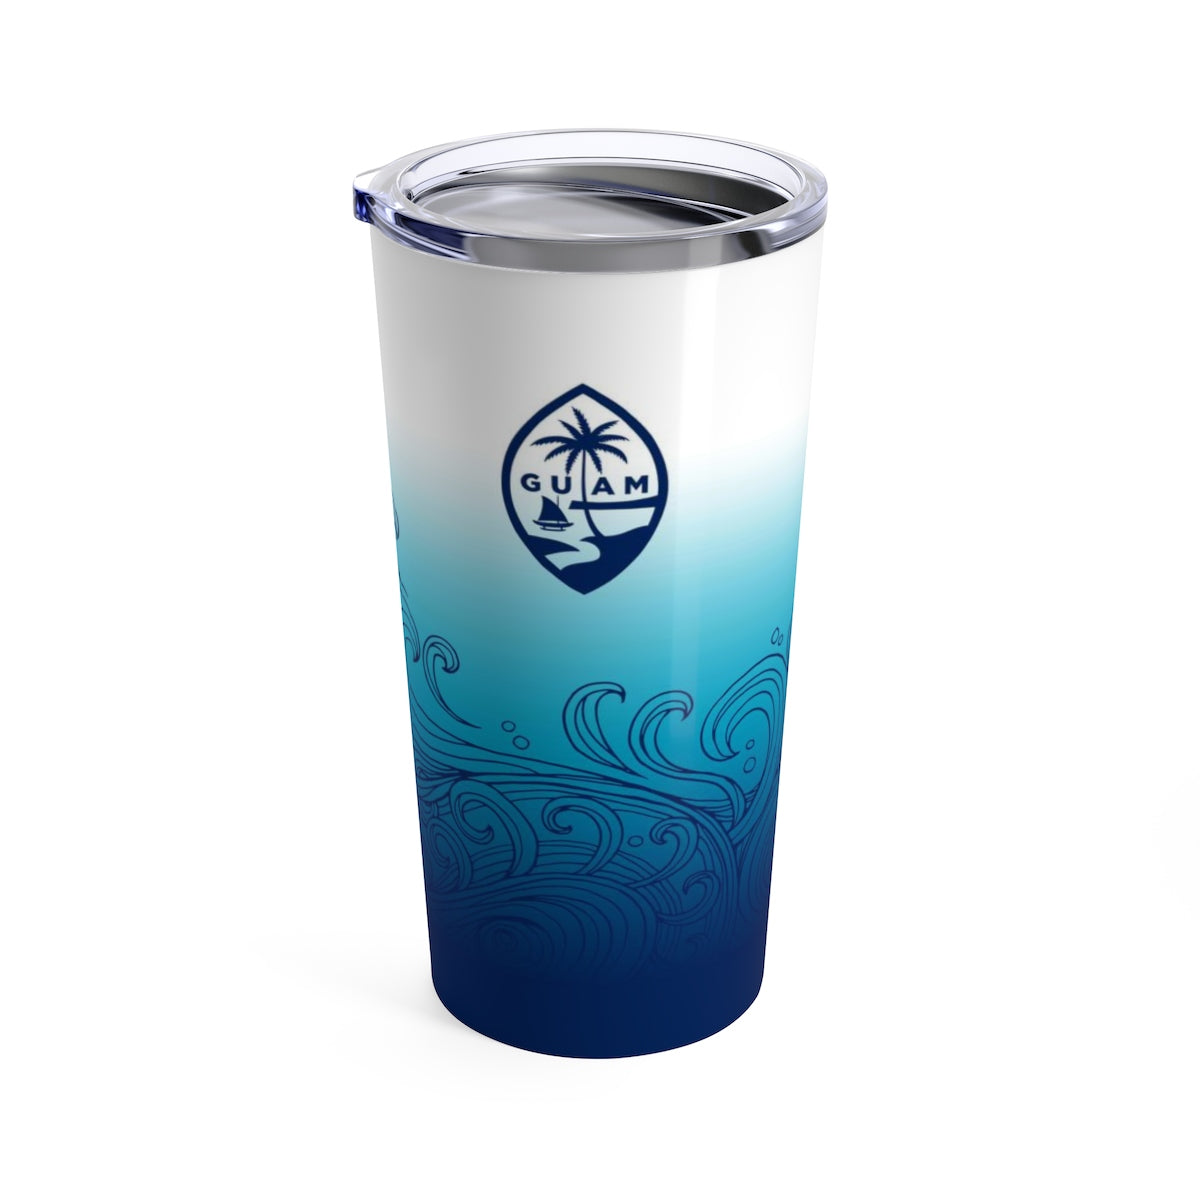 Guam Seal Ombre Waves 20oz Tumbler